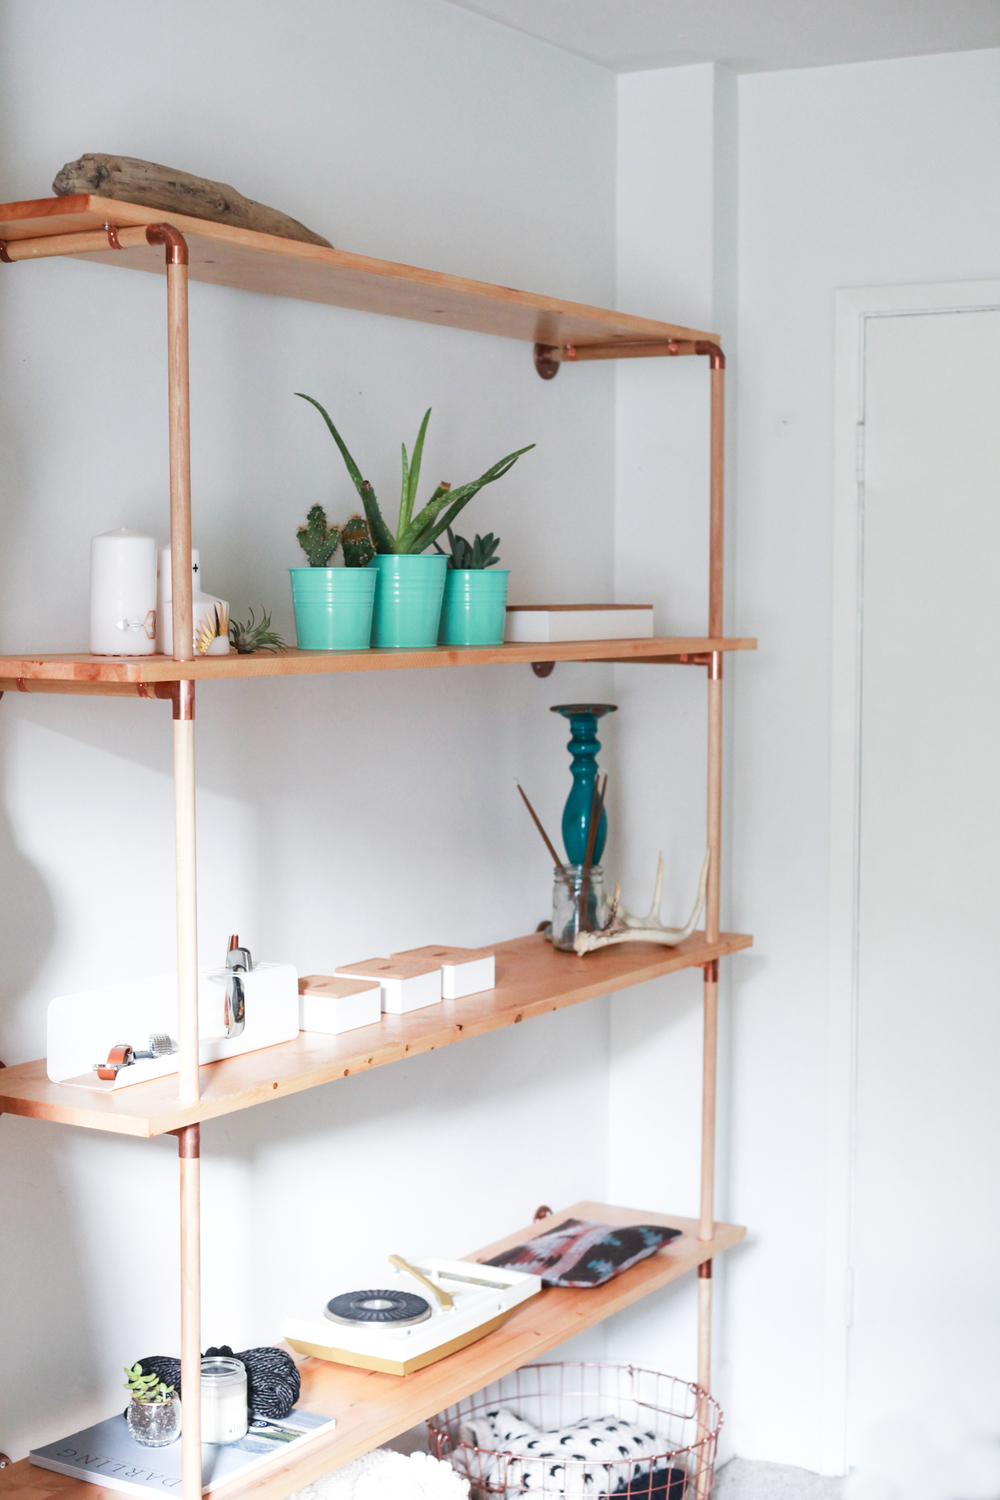 Diy copper wood shelf treasures travels solutioingenieria